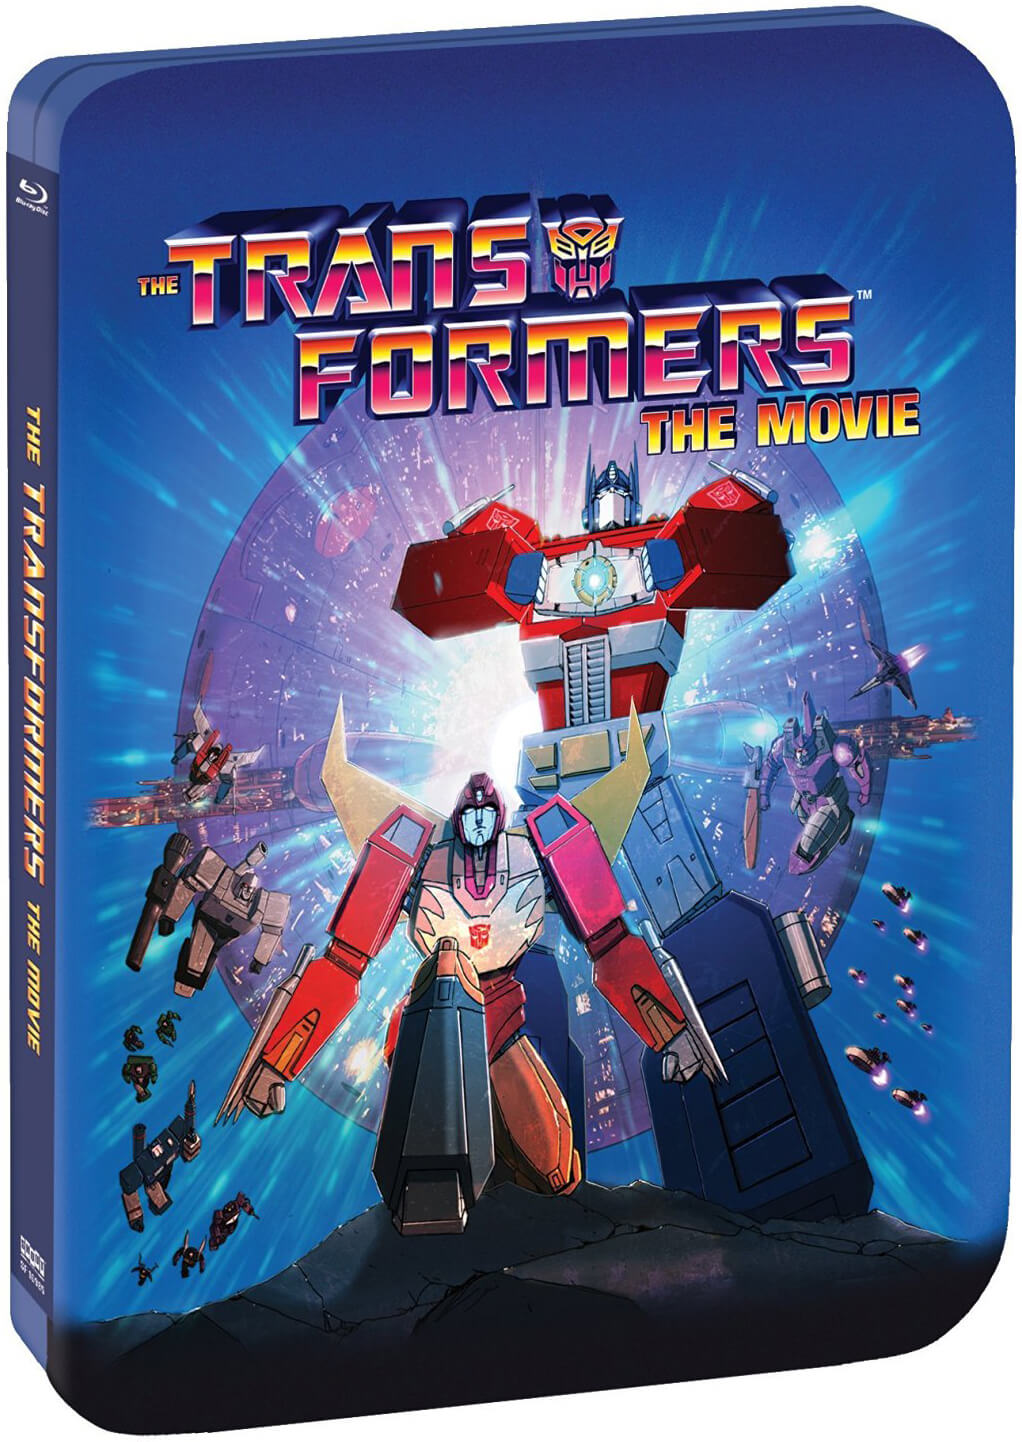 The Transformers: The Movie - 30th Anniversary Limited Edition Steelbook (Includes Digital Copy) (UK EDITION)